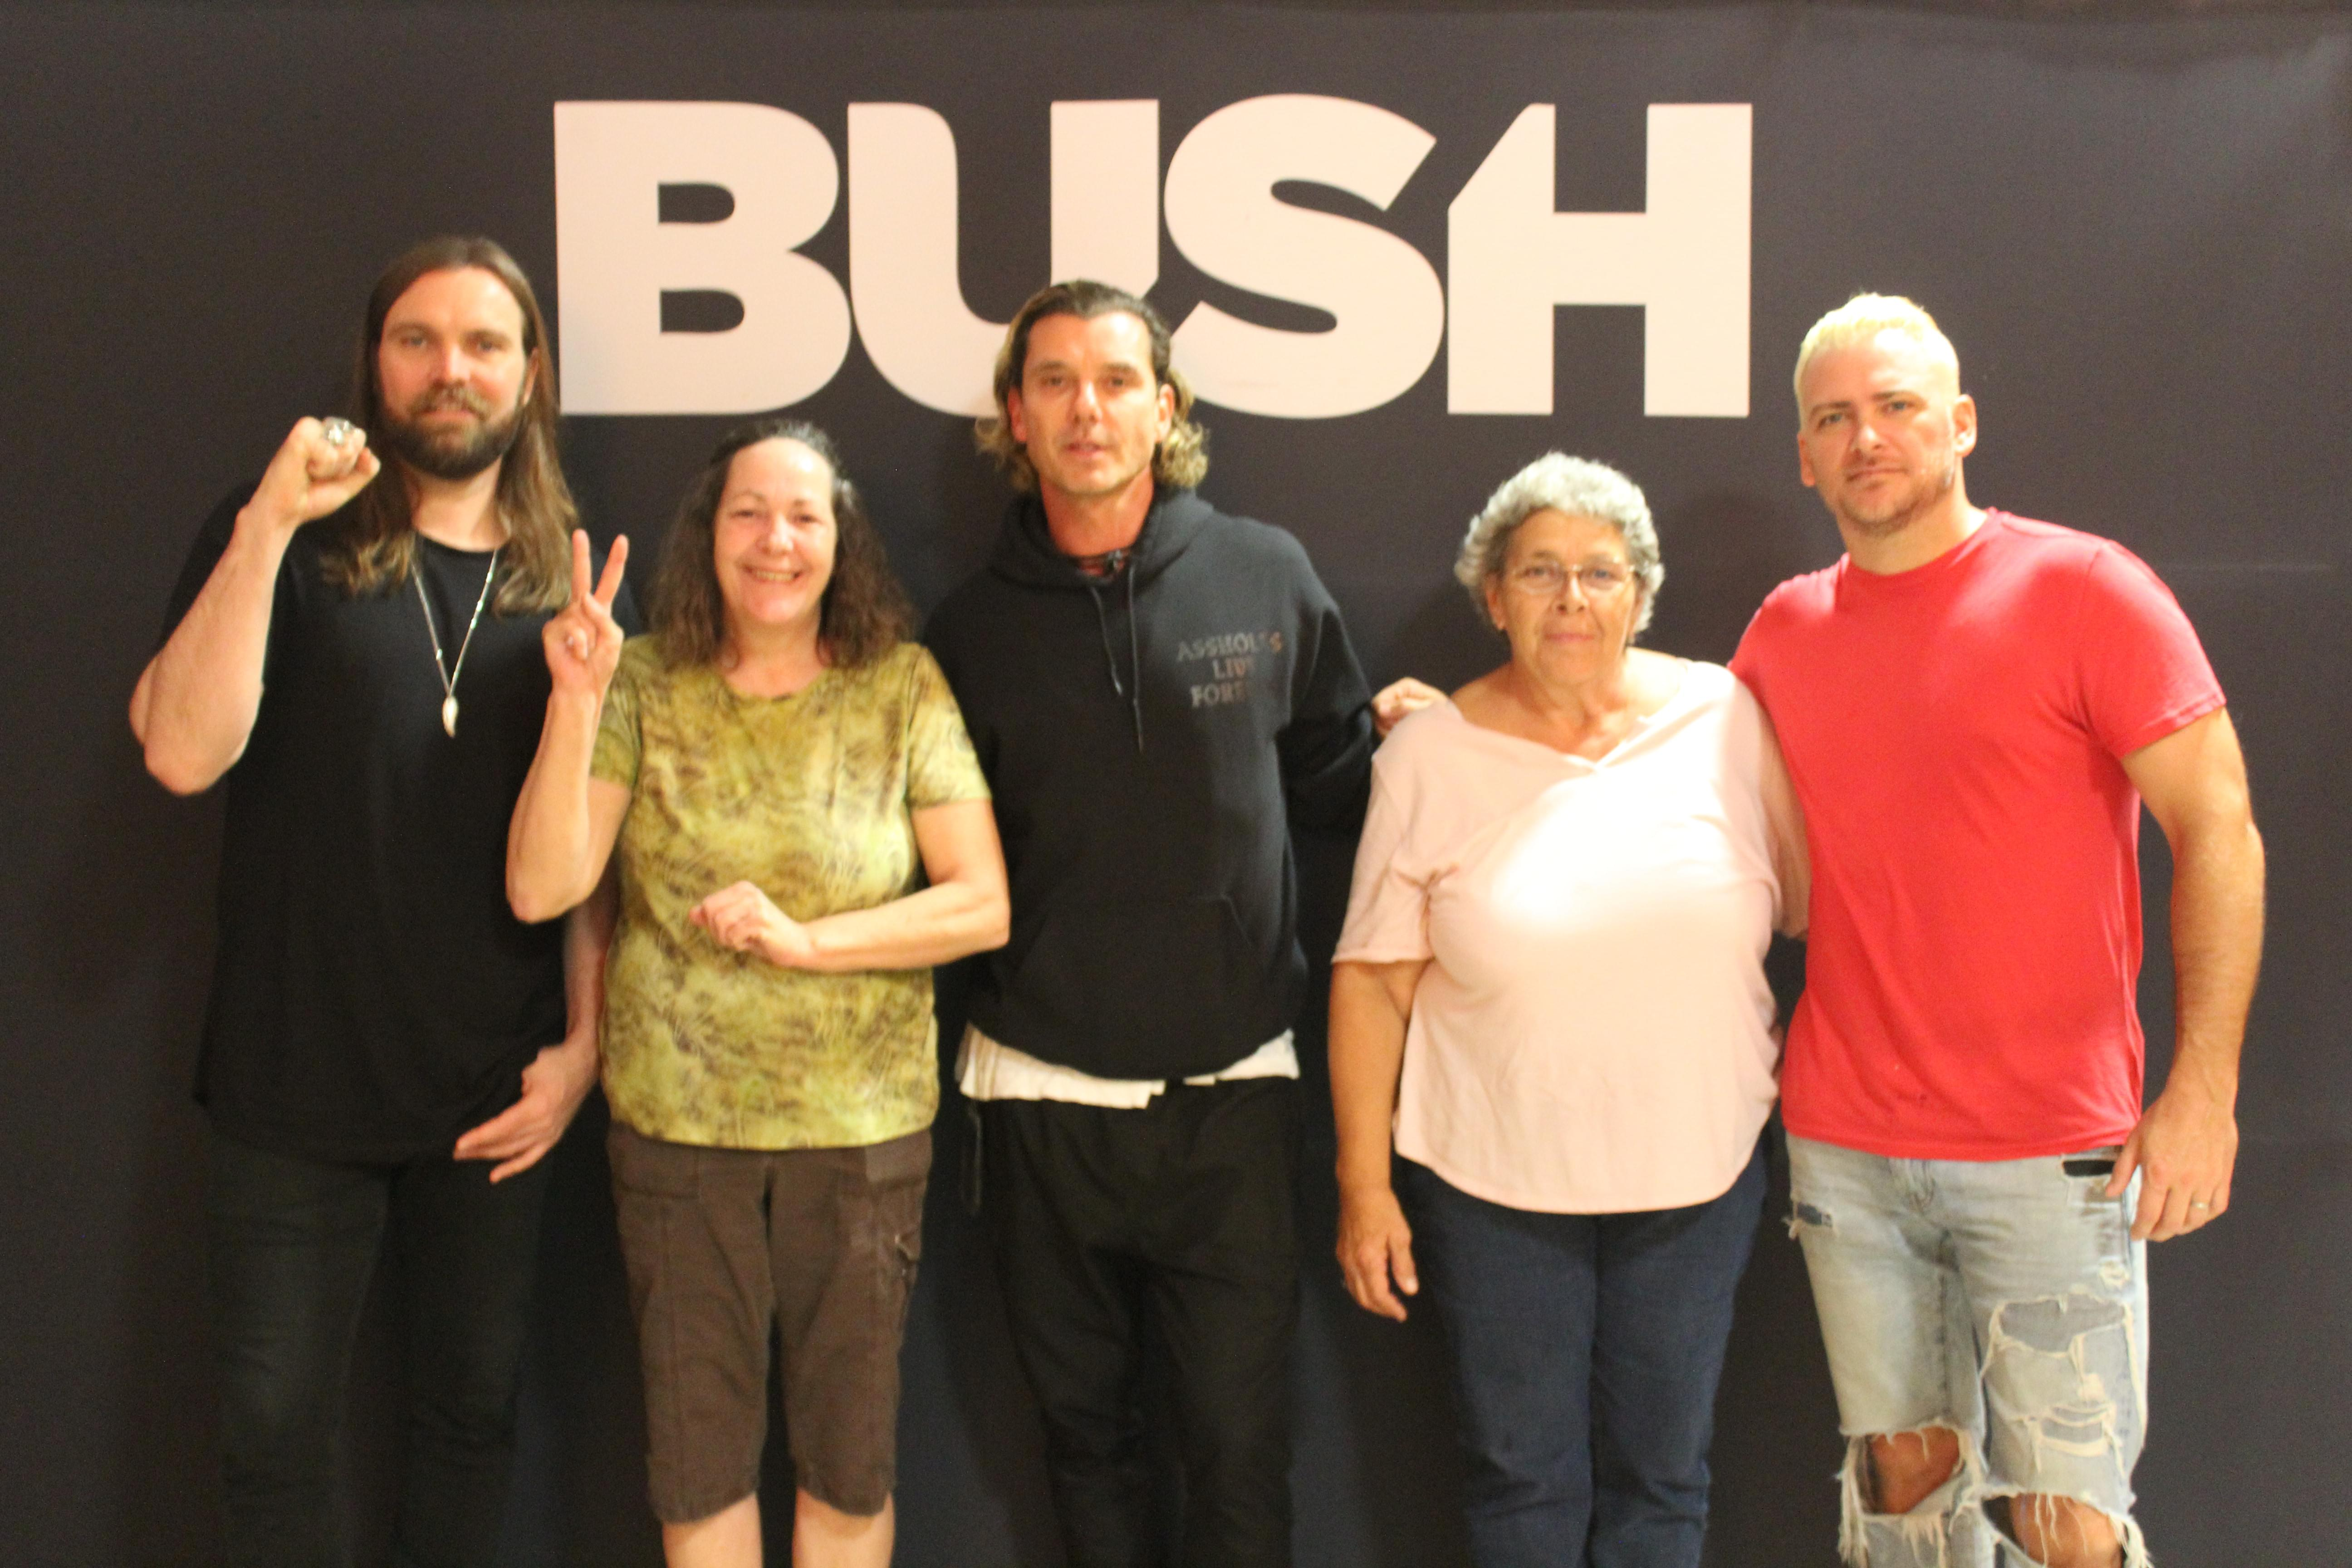 BUSH Meet + Greet 7/30/2019